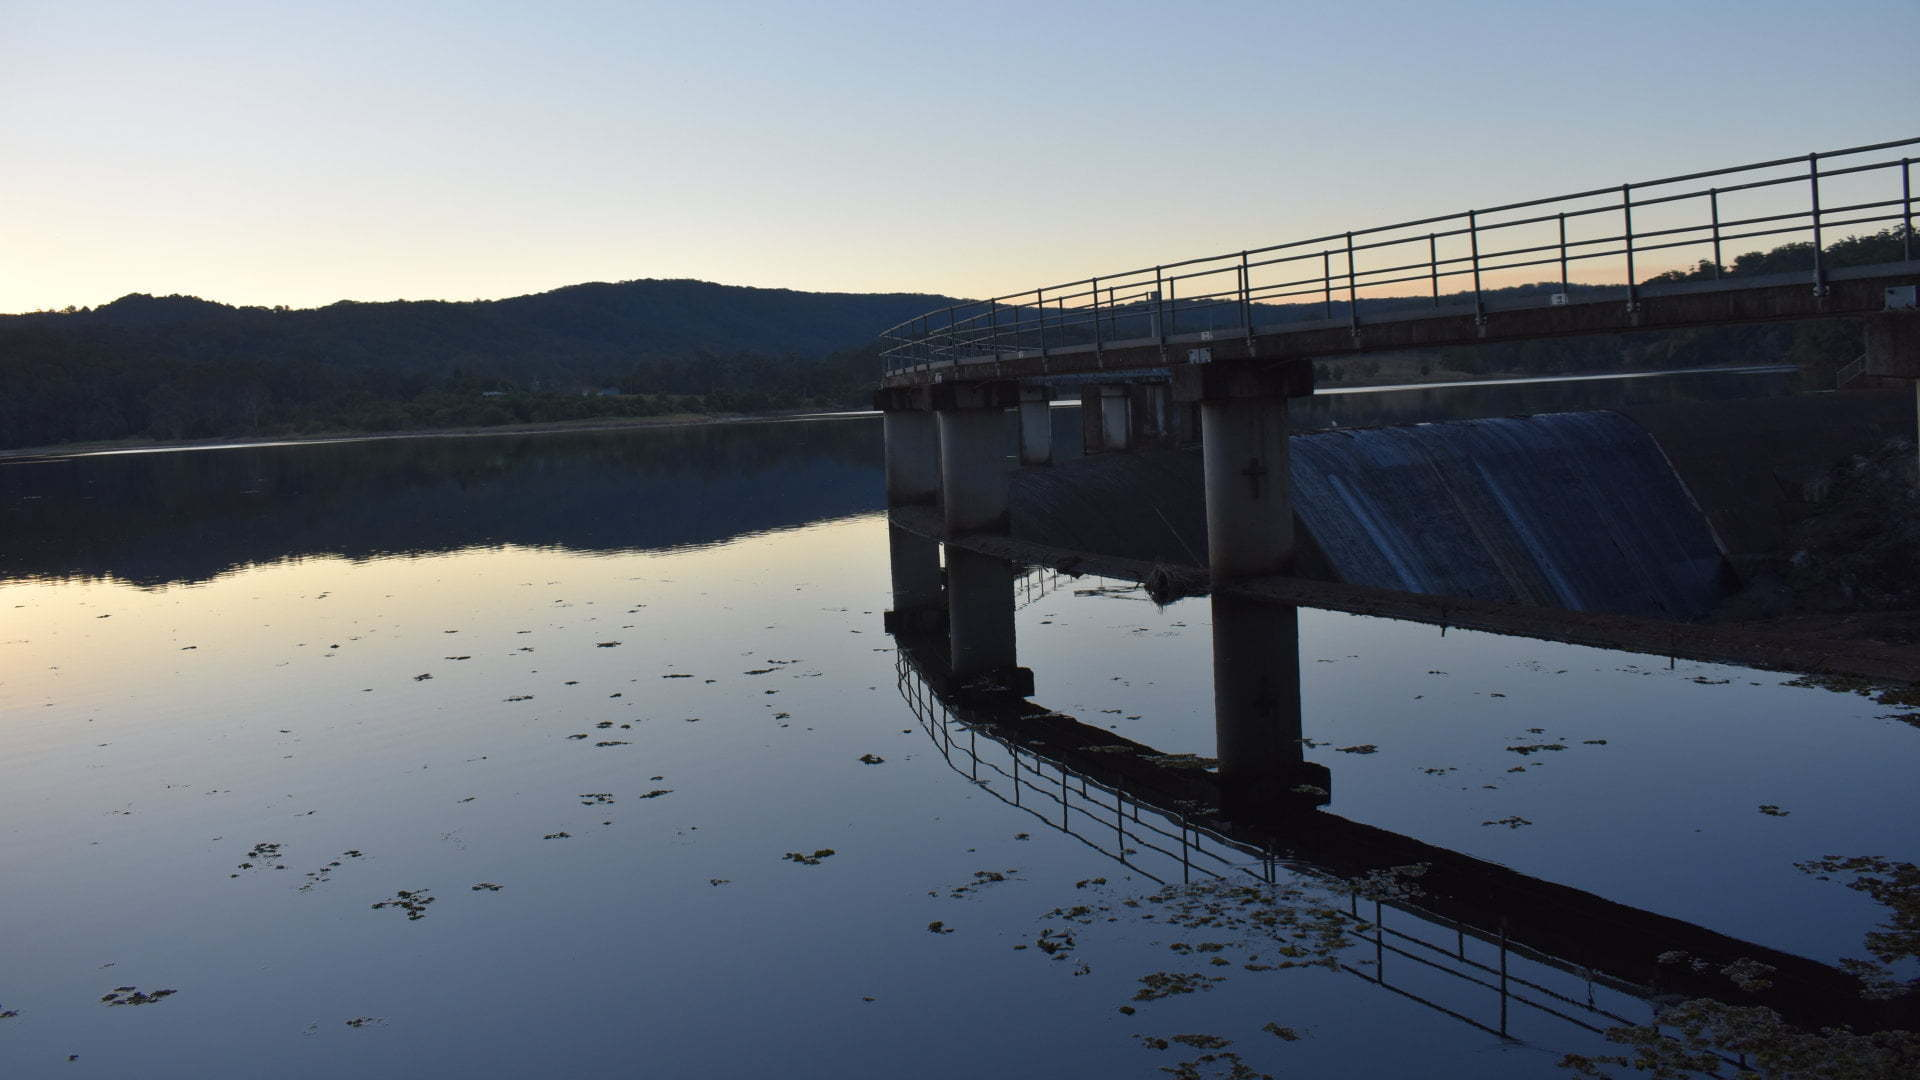 Late afternoon dam surface with mountain hills in the background and curved dam wall to the right, Wappa Dam near Yandina